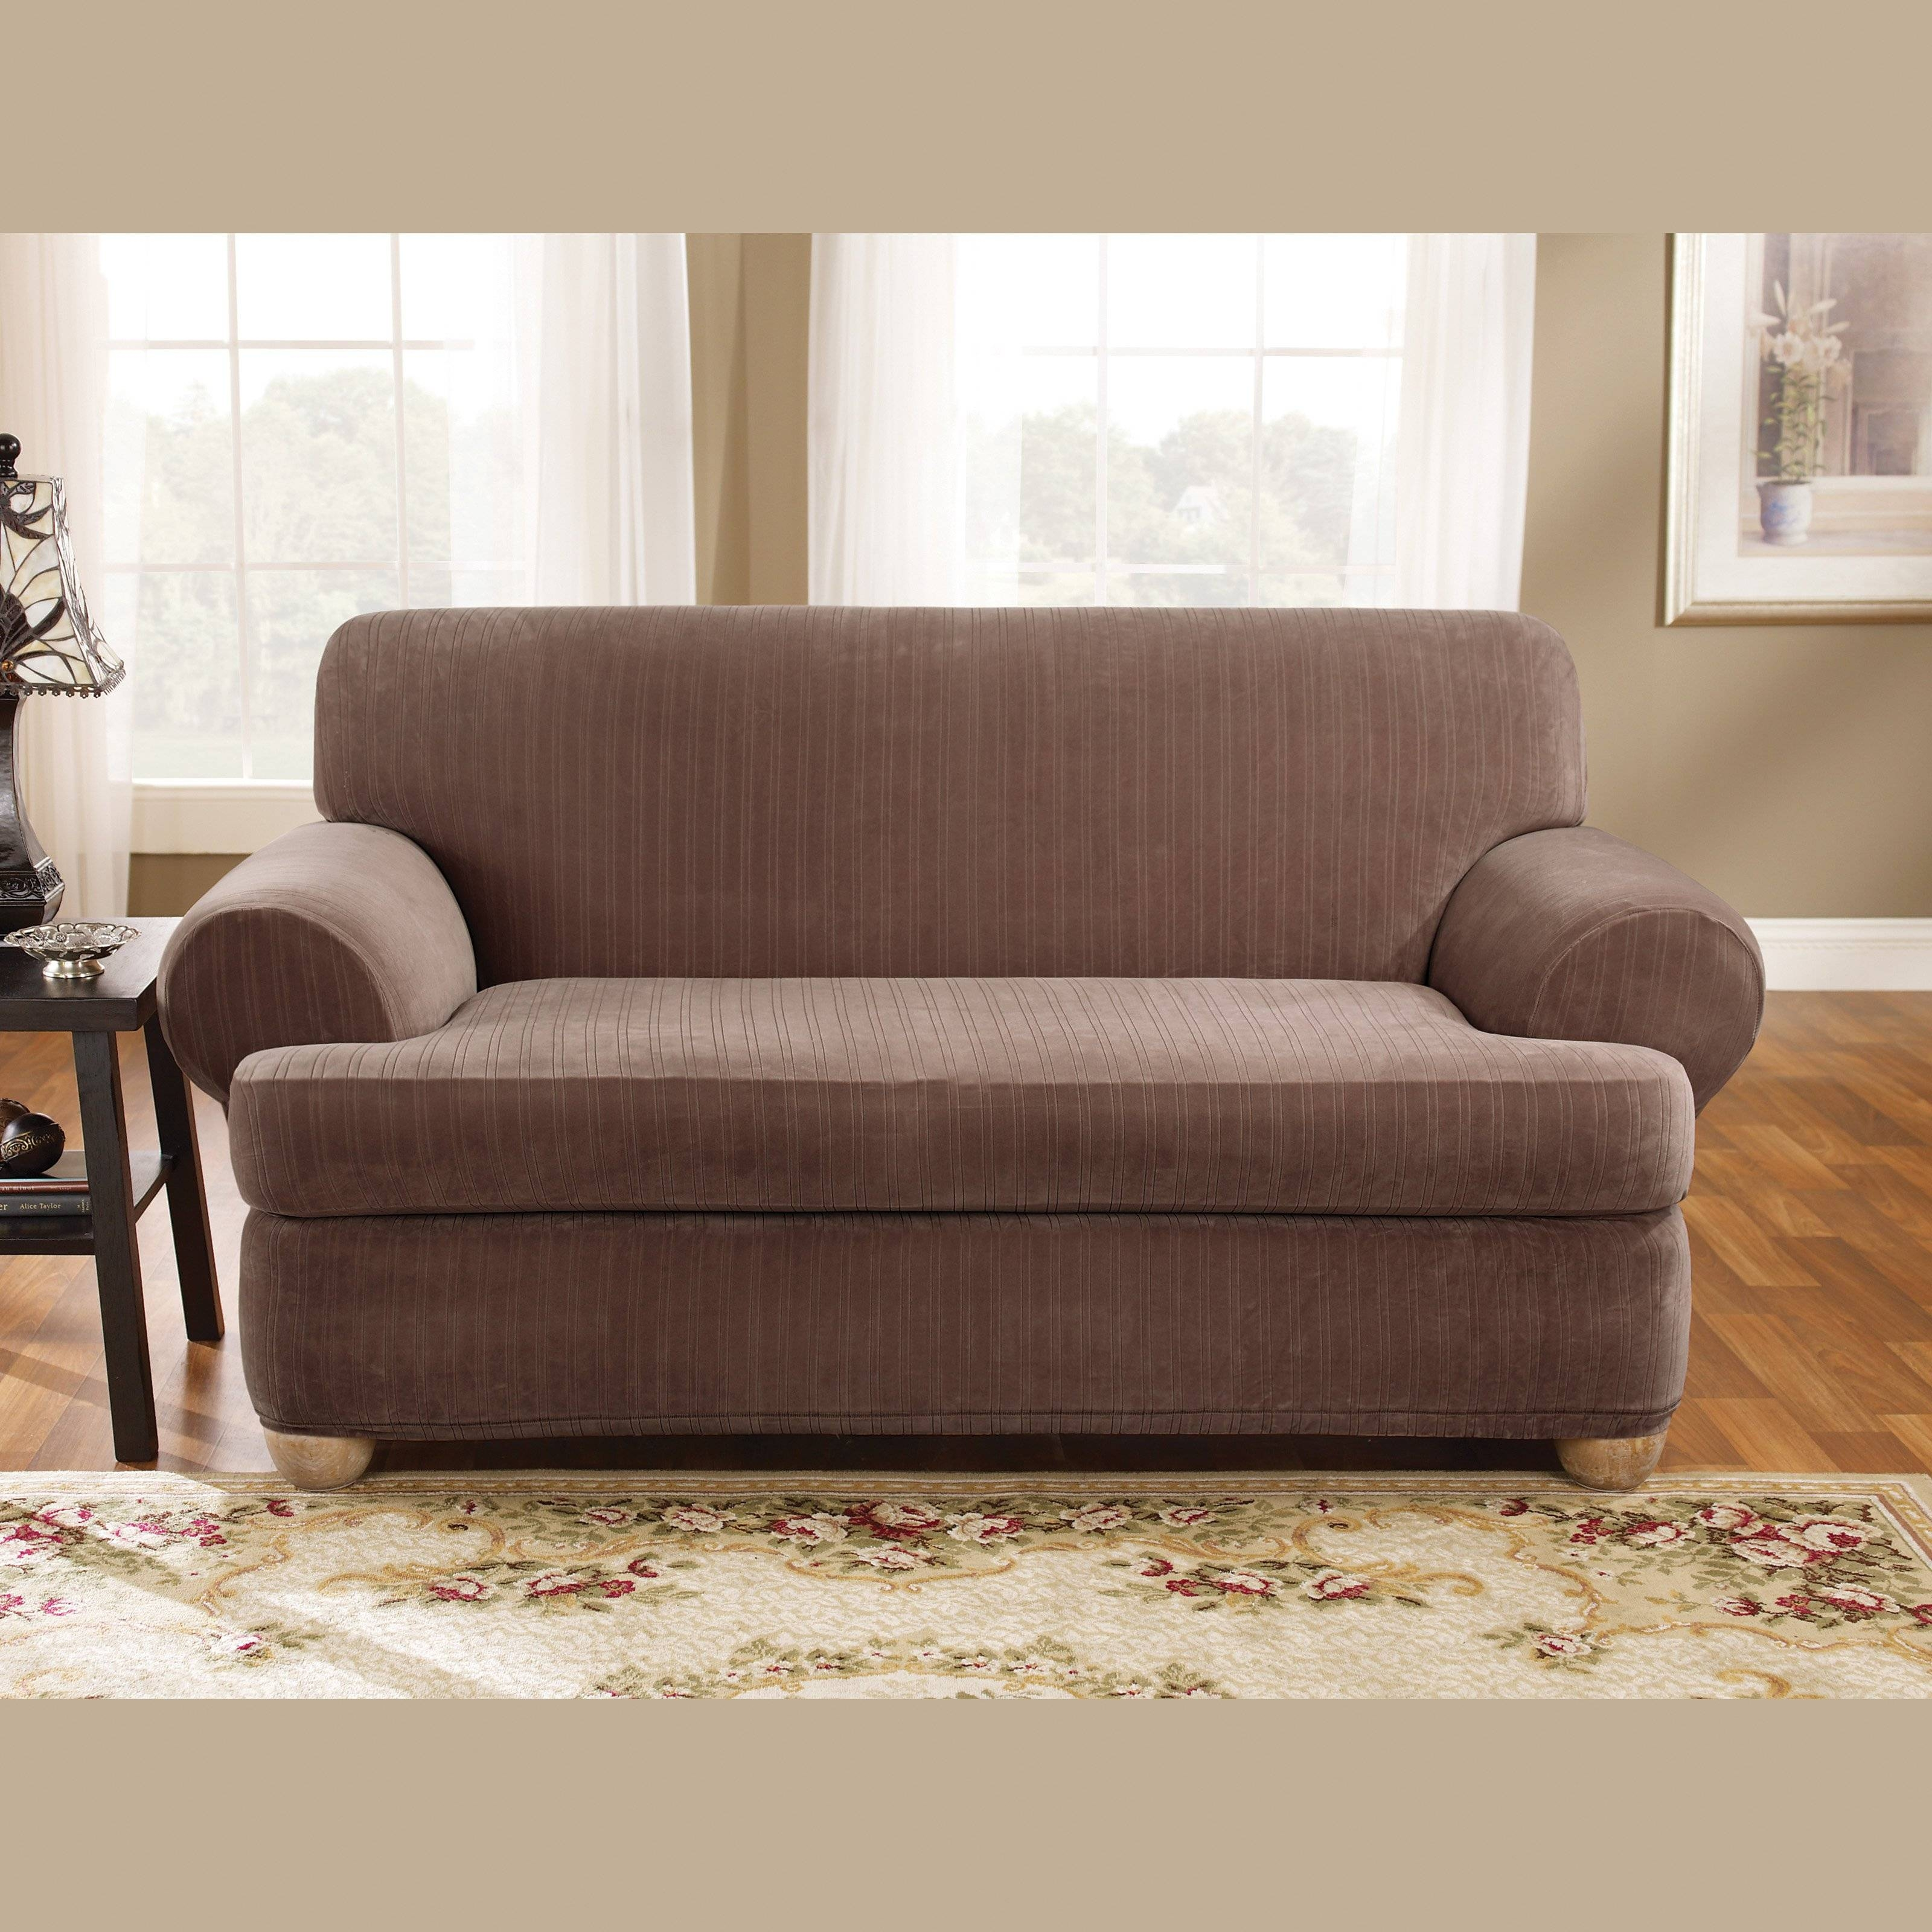 Tailor Fit Stretch Fit Sofa Slipcover | Hayneedle pertaining to Sofa And Loveseat Covers (Image 15 of 15)